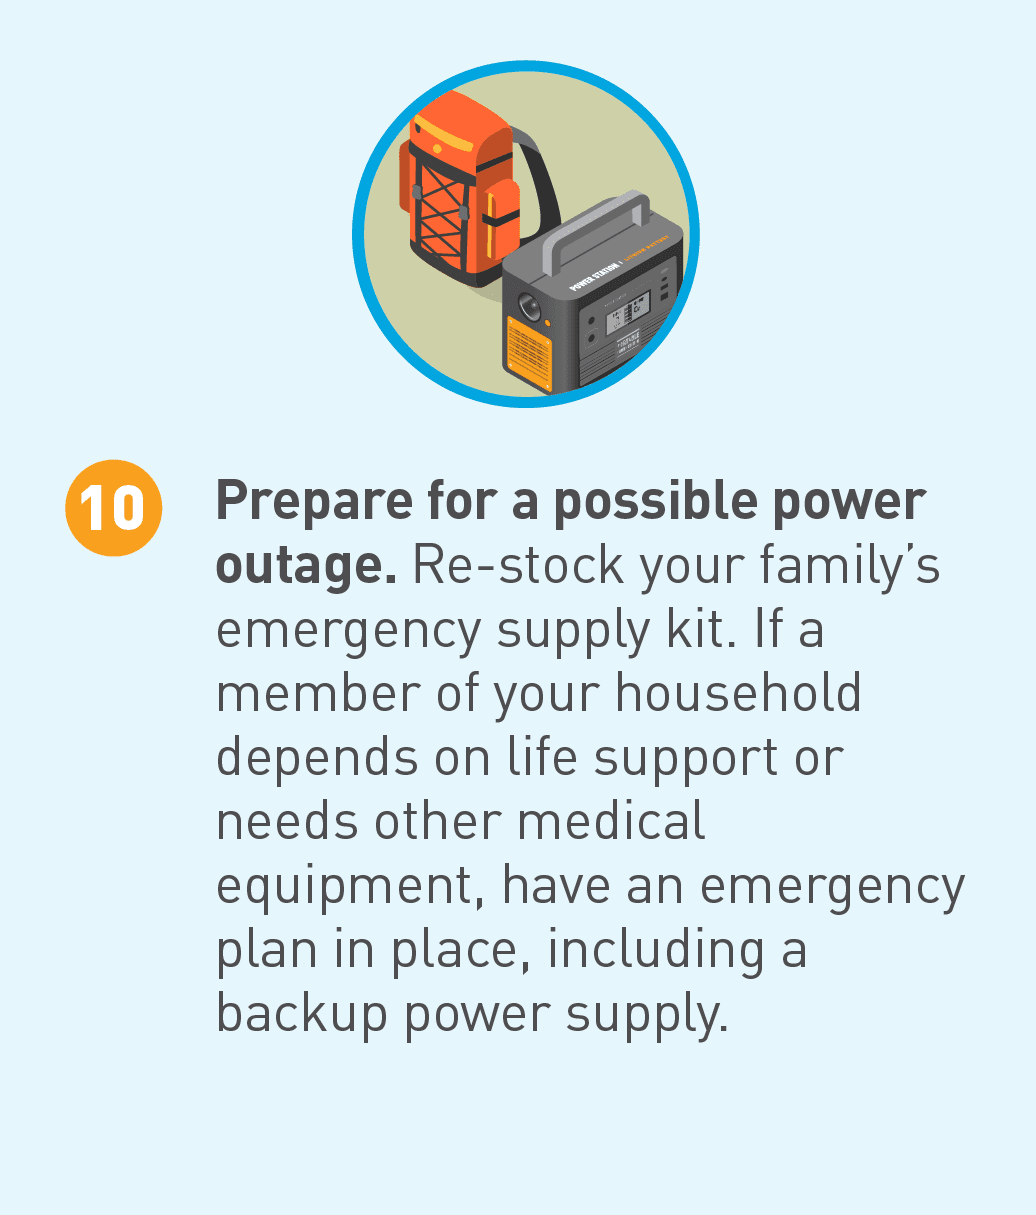 Illustrated icon of backup power and backpack